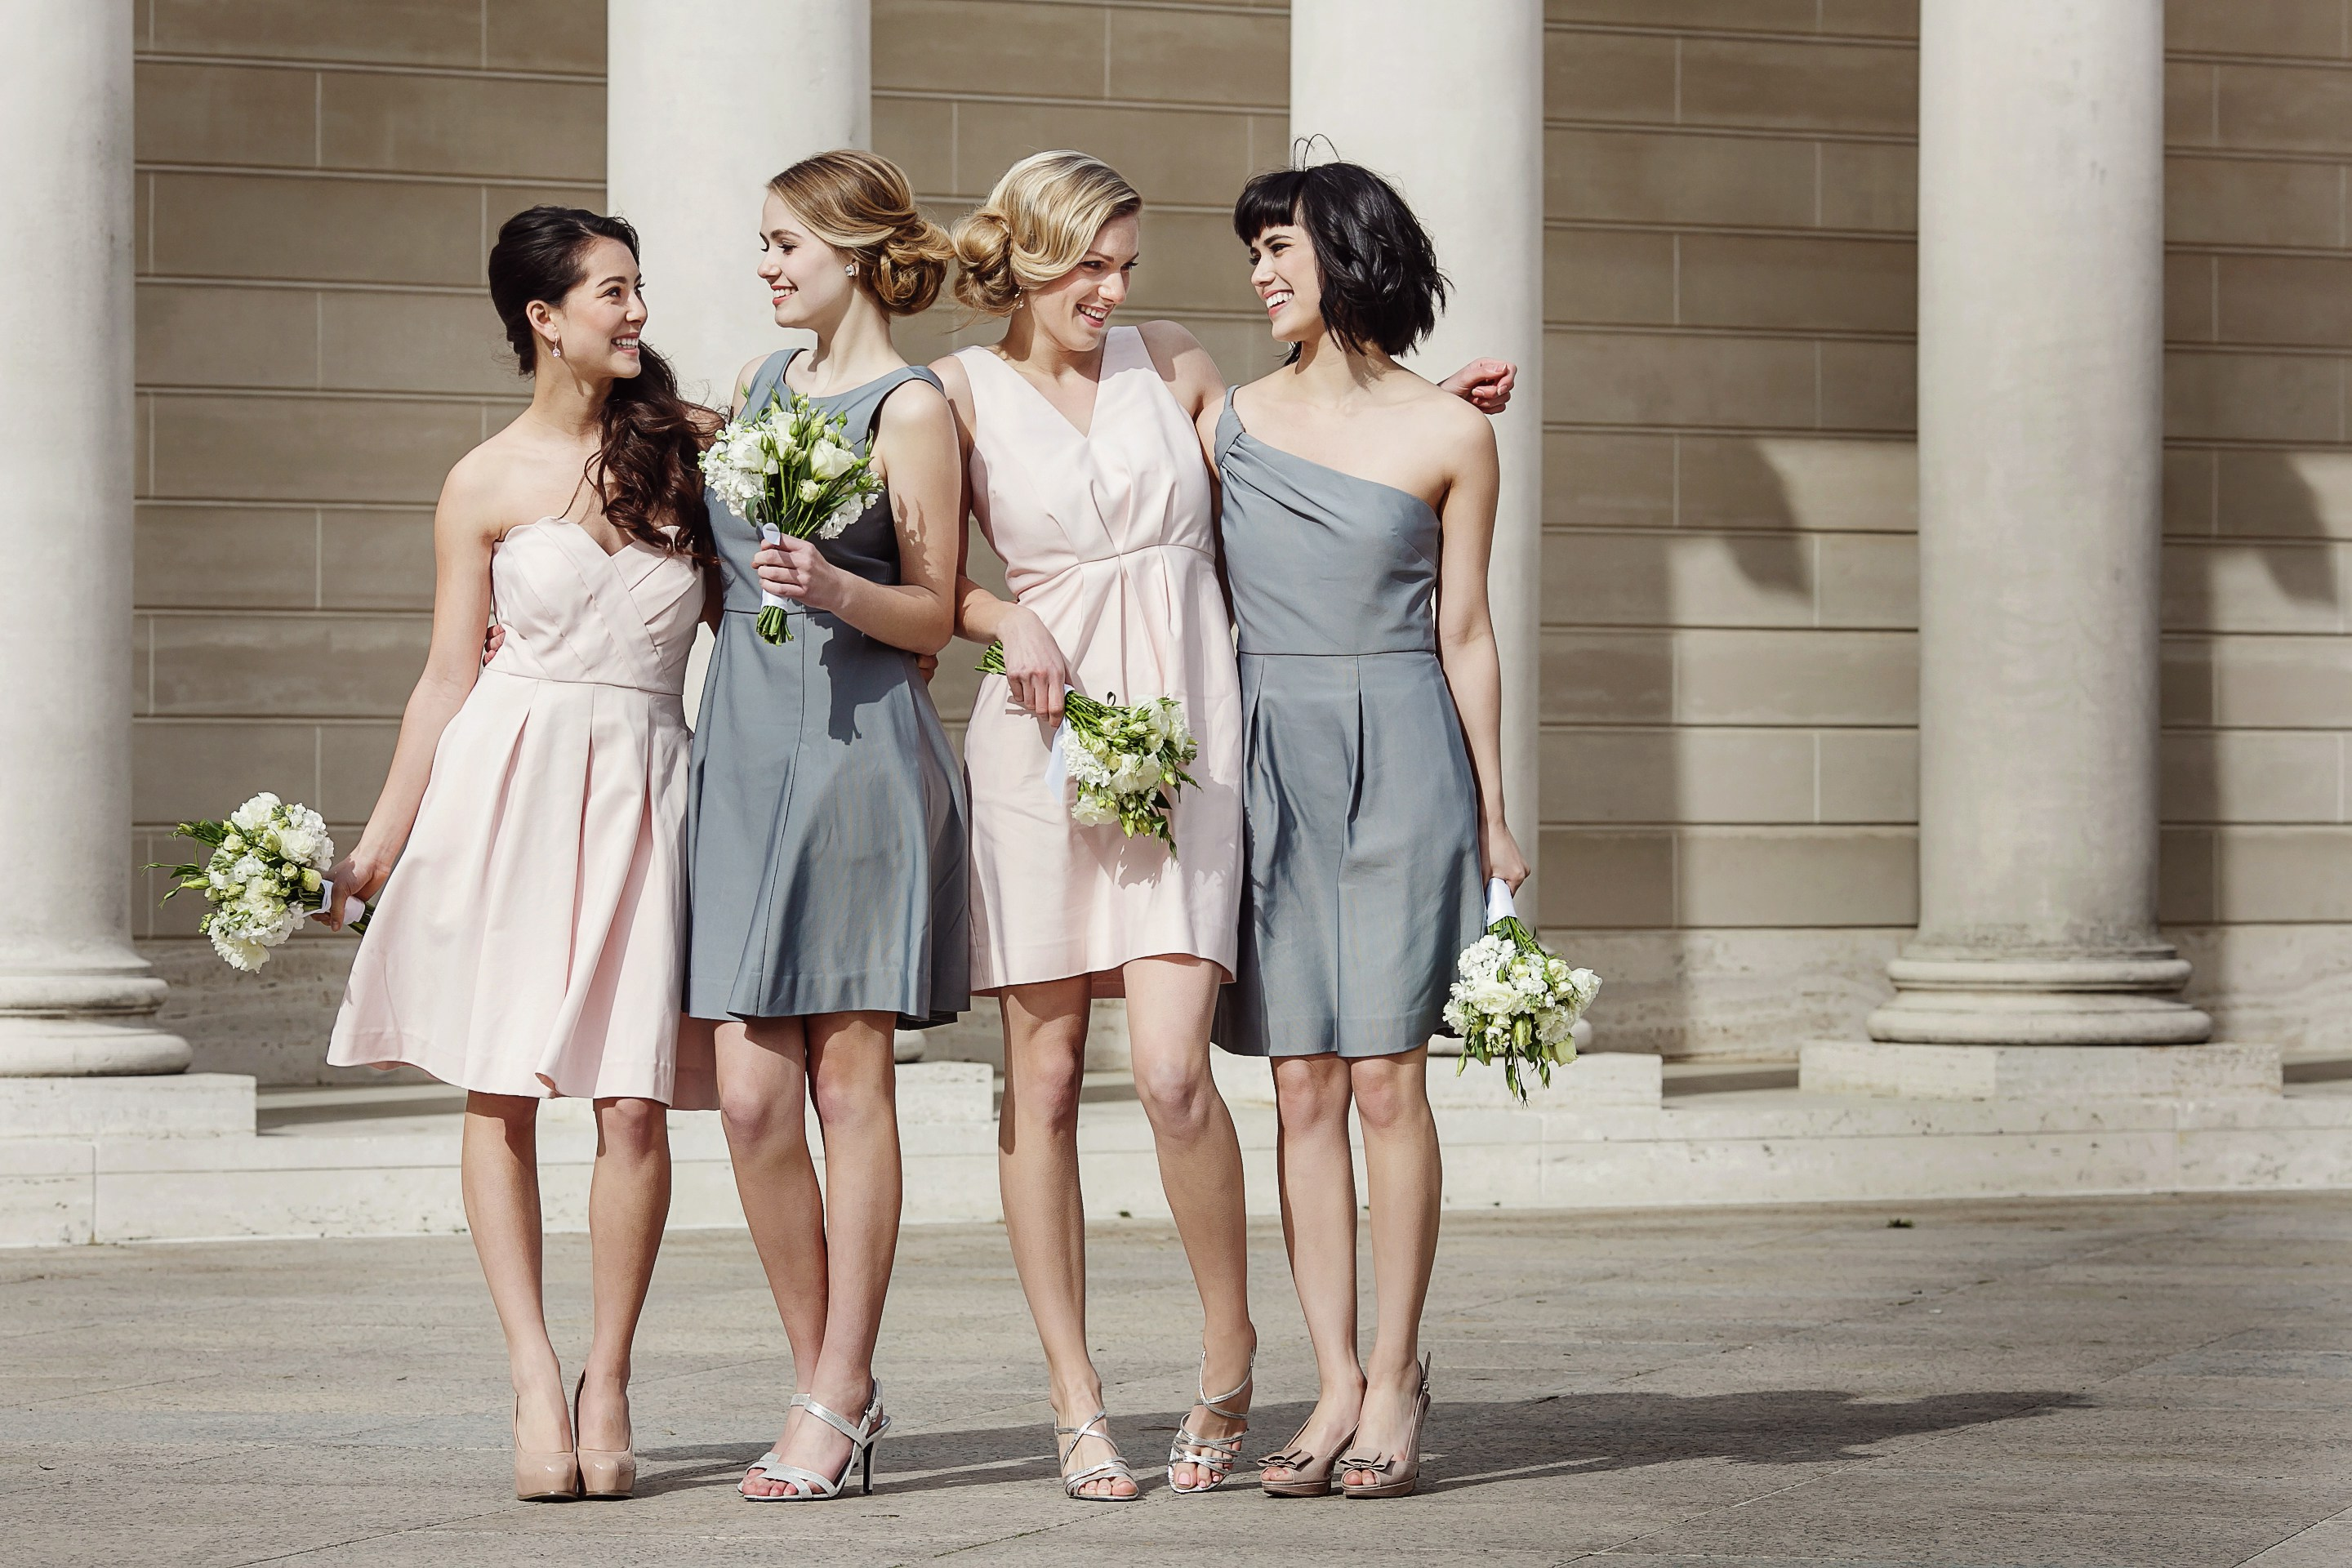 Top 4 picks for bridesmaid dresses rental sites everafterguide top 4 picks for bridesmaid dresses rental sites ombrellifo Gallery